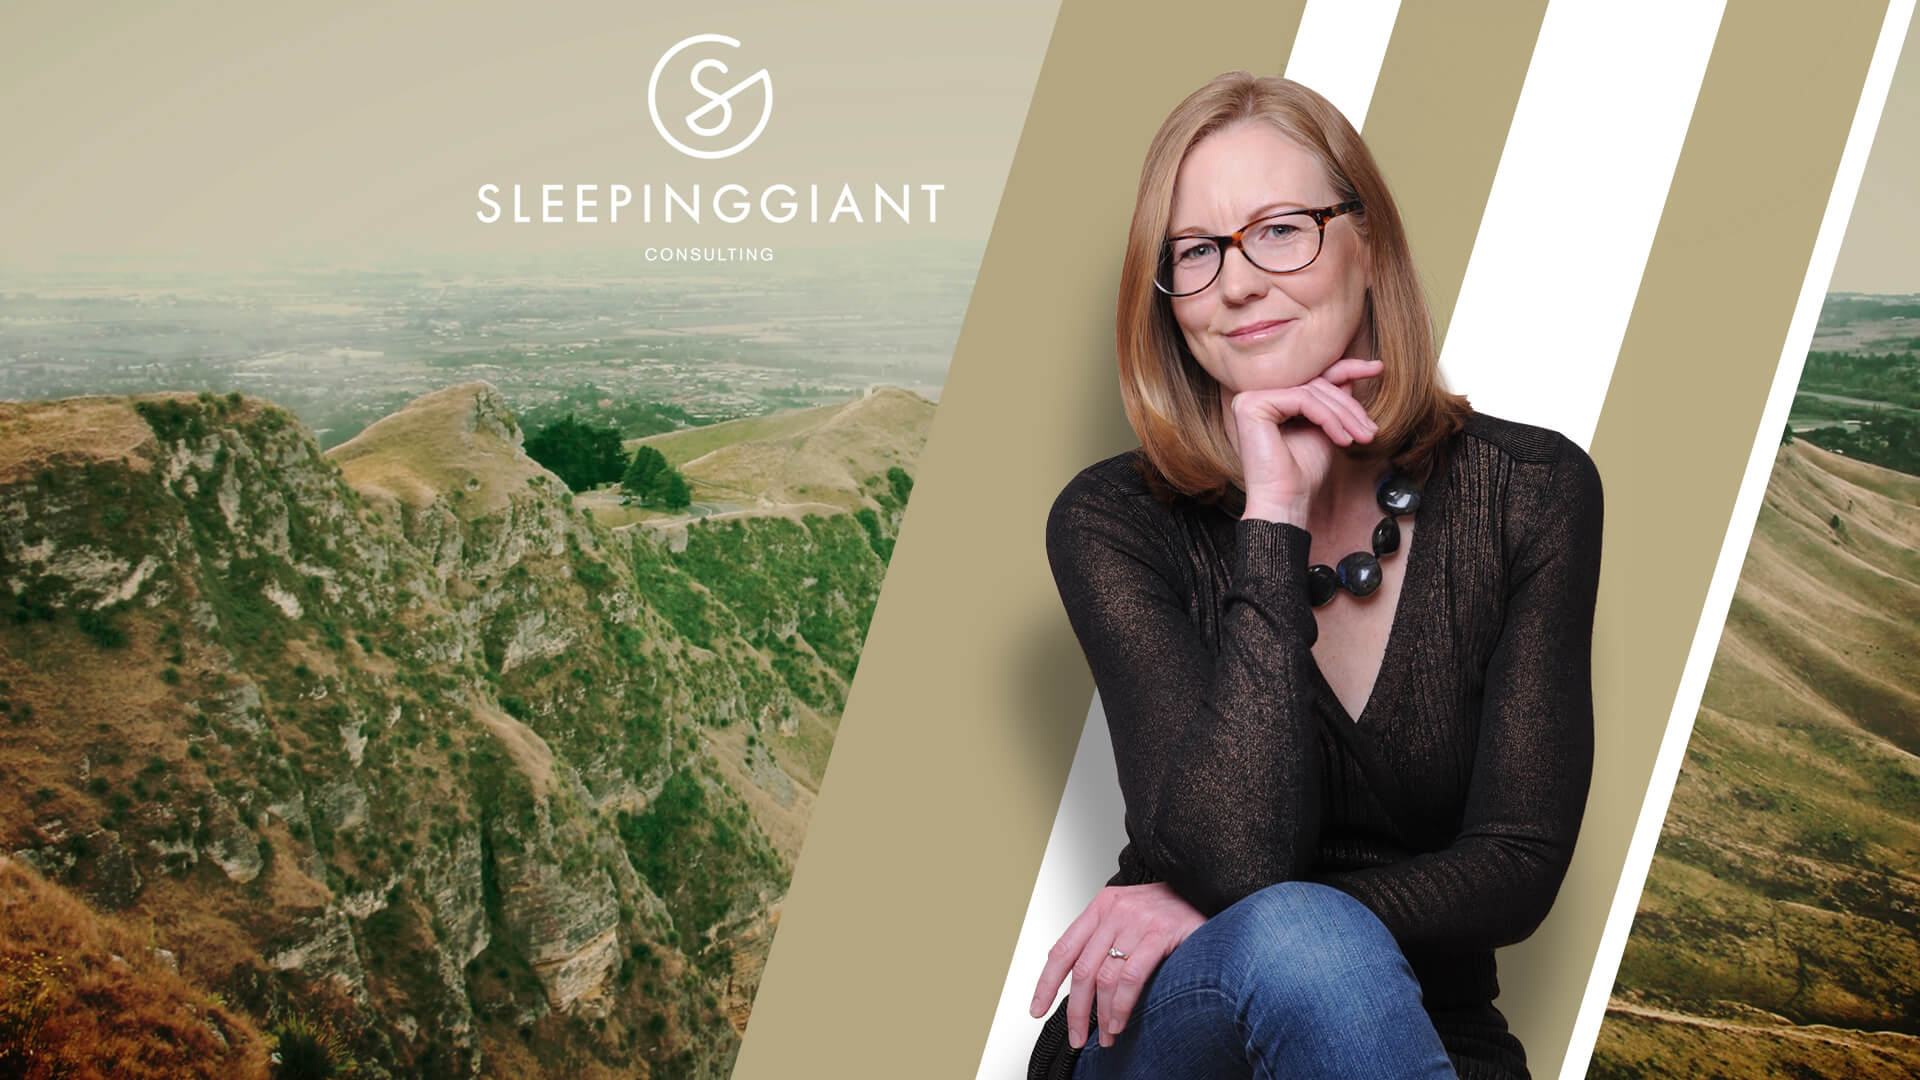 Karen Fugle from Sleeping Giant Consulting